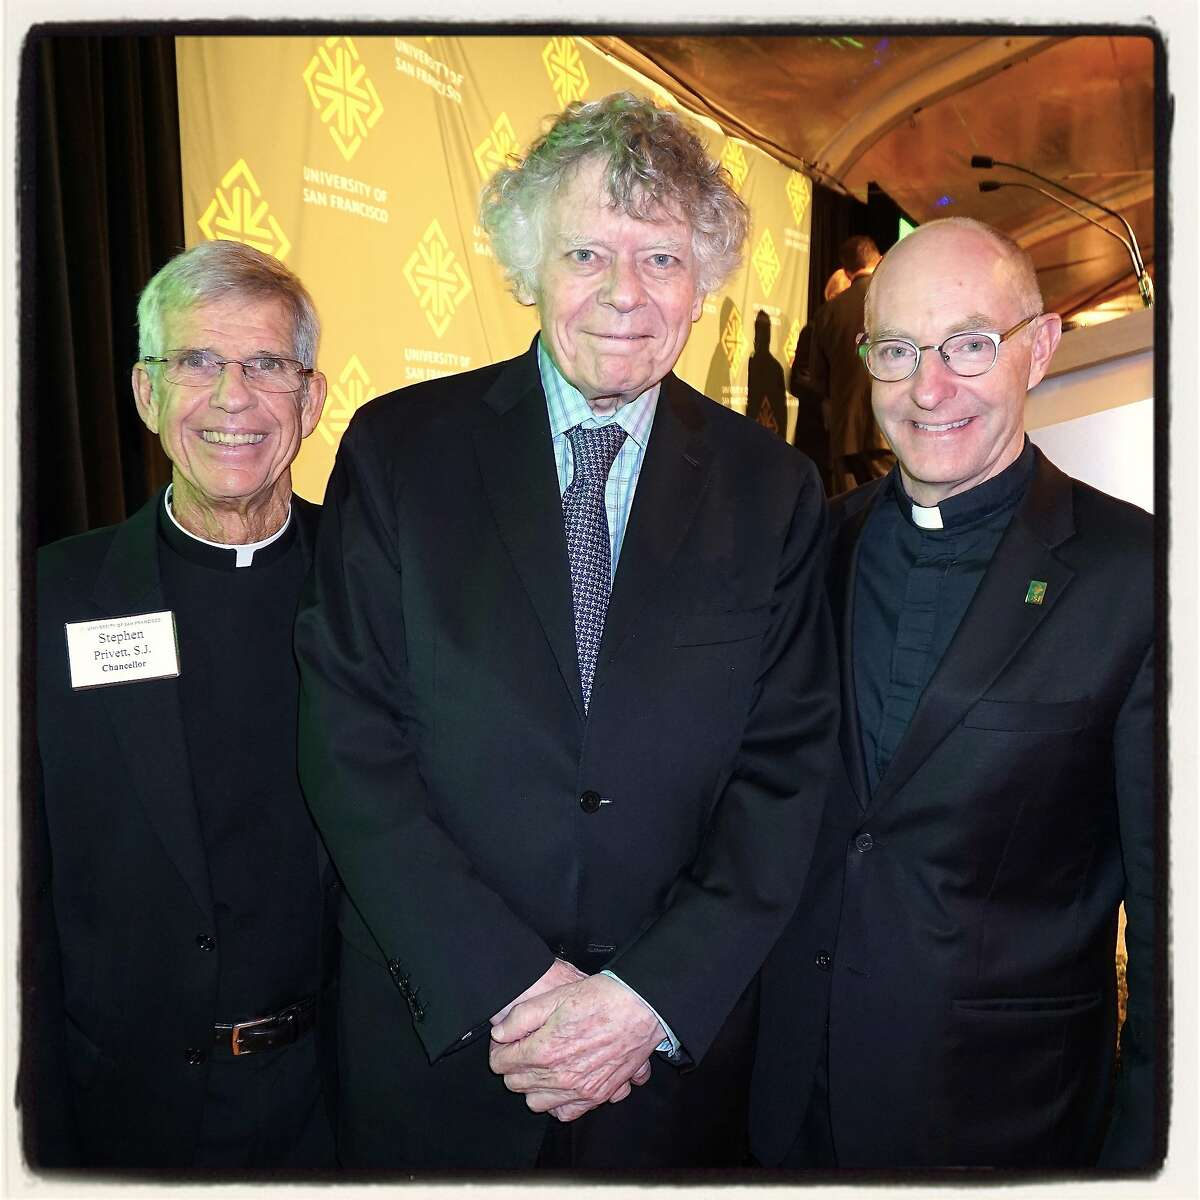 USF Chancellor Stephen Privett (left) and USF President Paul Fitzgerald (right) honored composer Gordon Getty as the 2015 Alumni of the Year. Oct 2015.